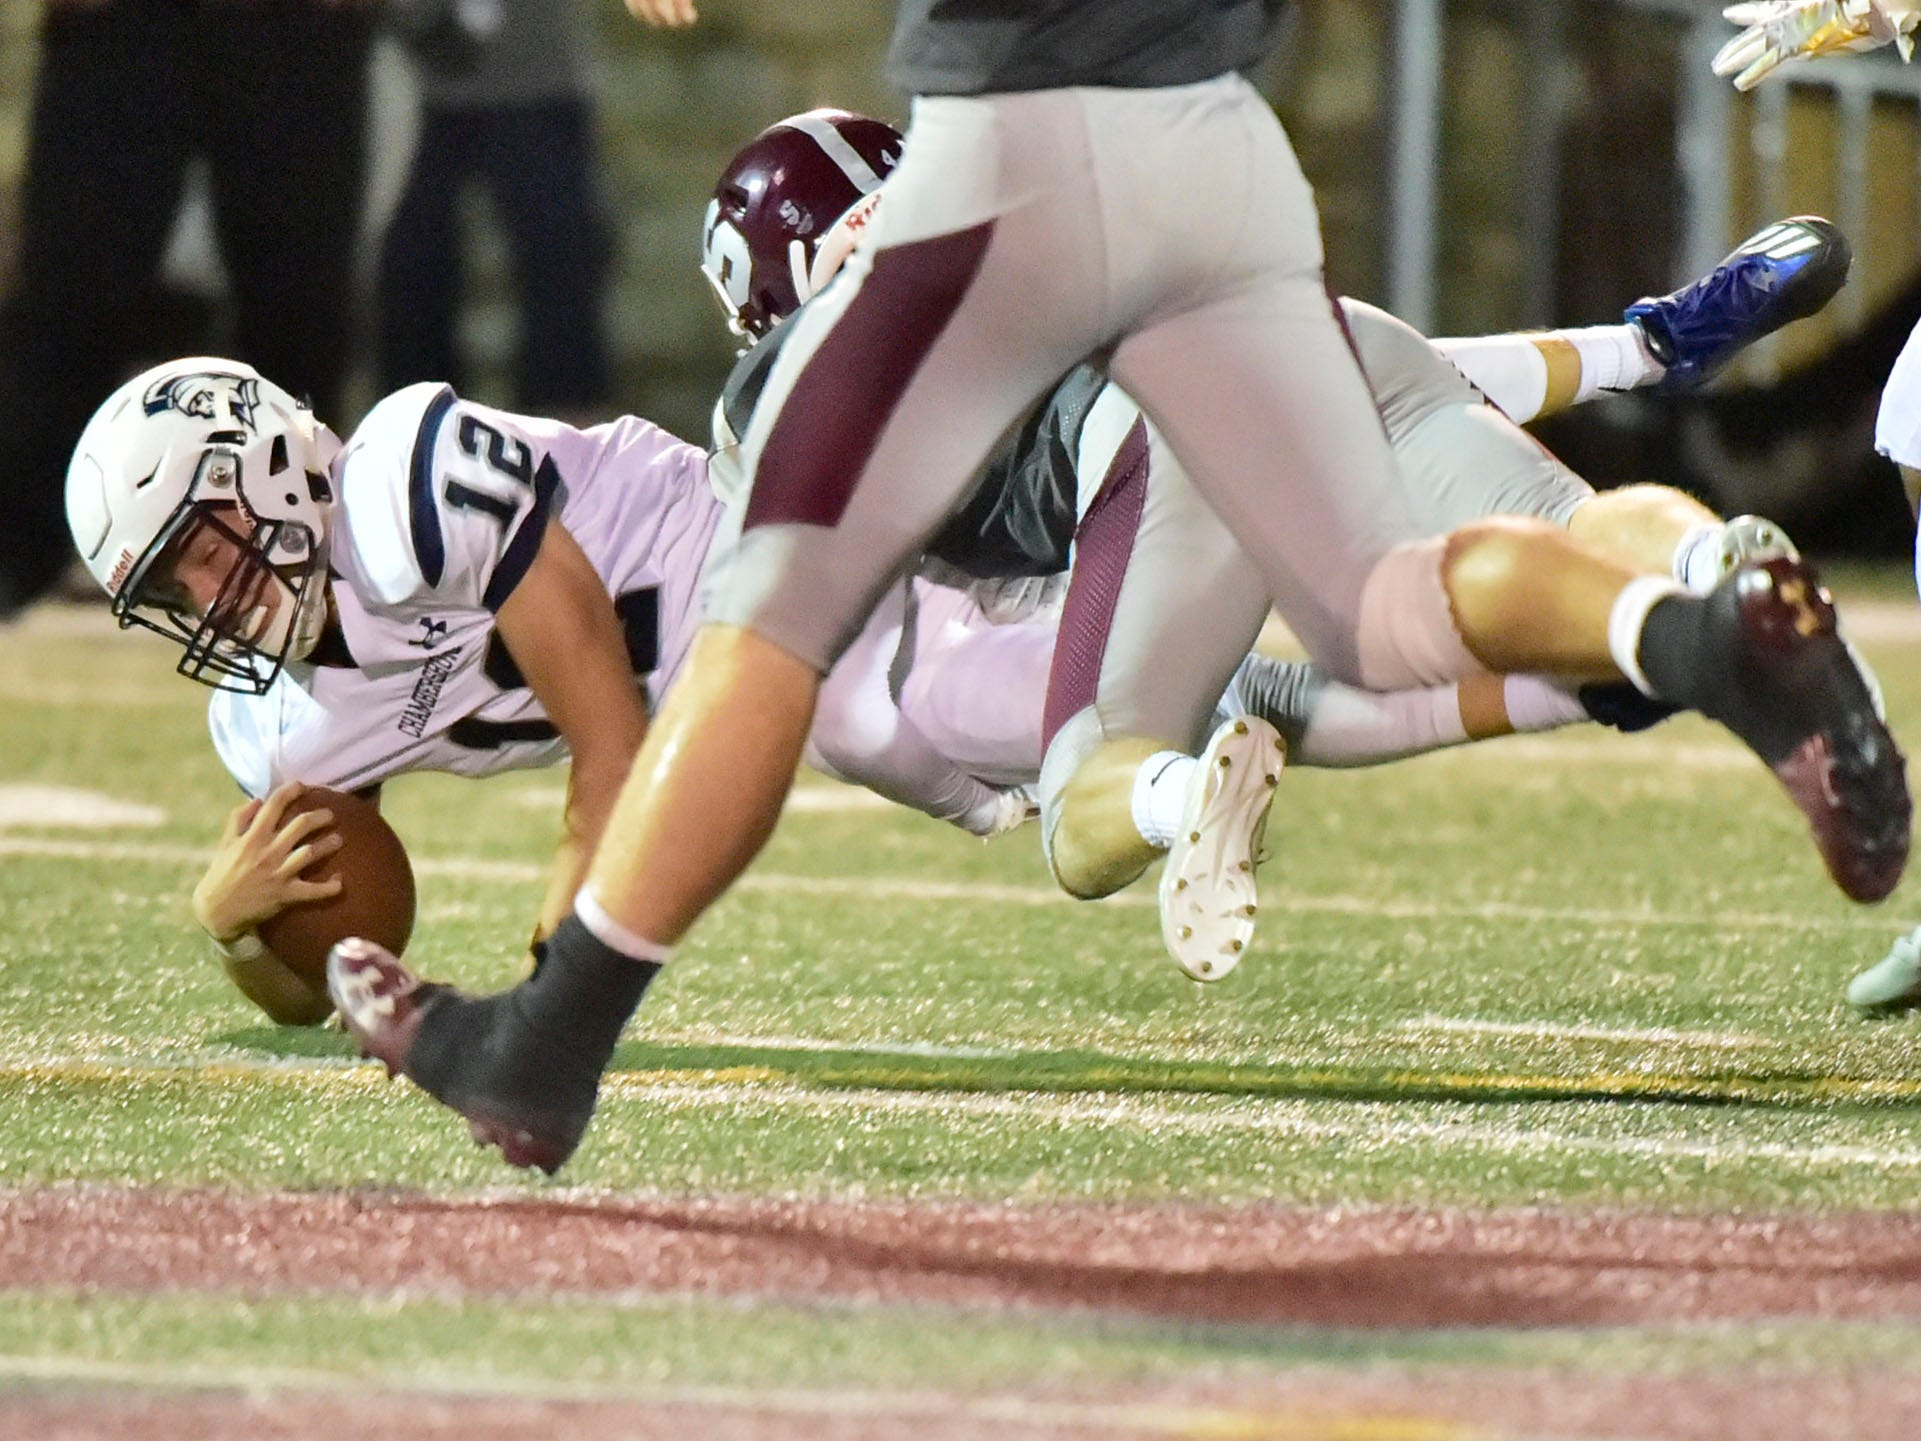 Brady Stumbaugh of Chambersburg is tackled in the forst half. Chambersburg, 4-0 suffered their first loss of the season against undefeated State College in PIAA road game on Friday, Sept. 21, 2018.